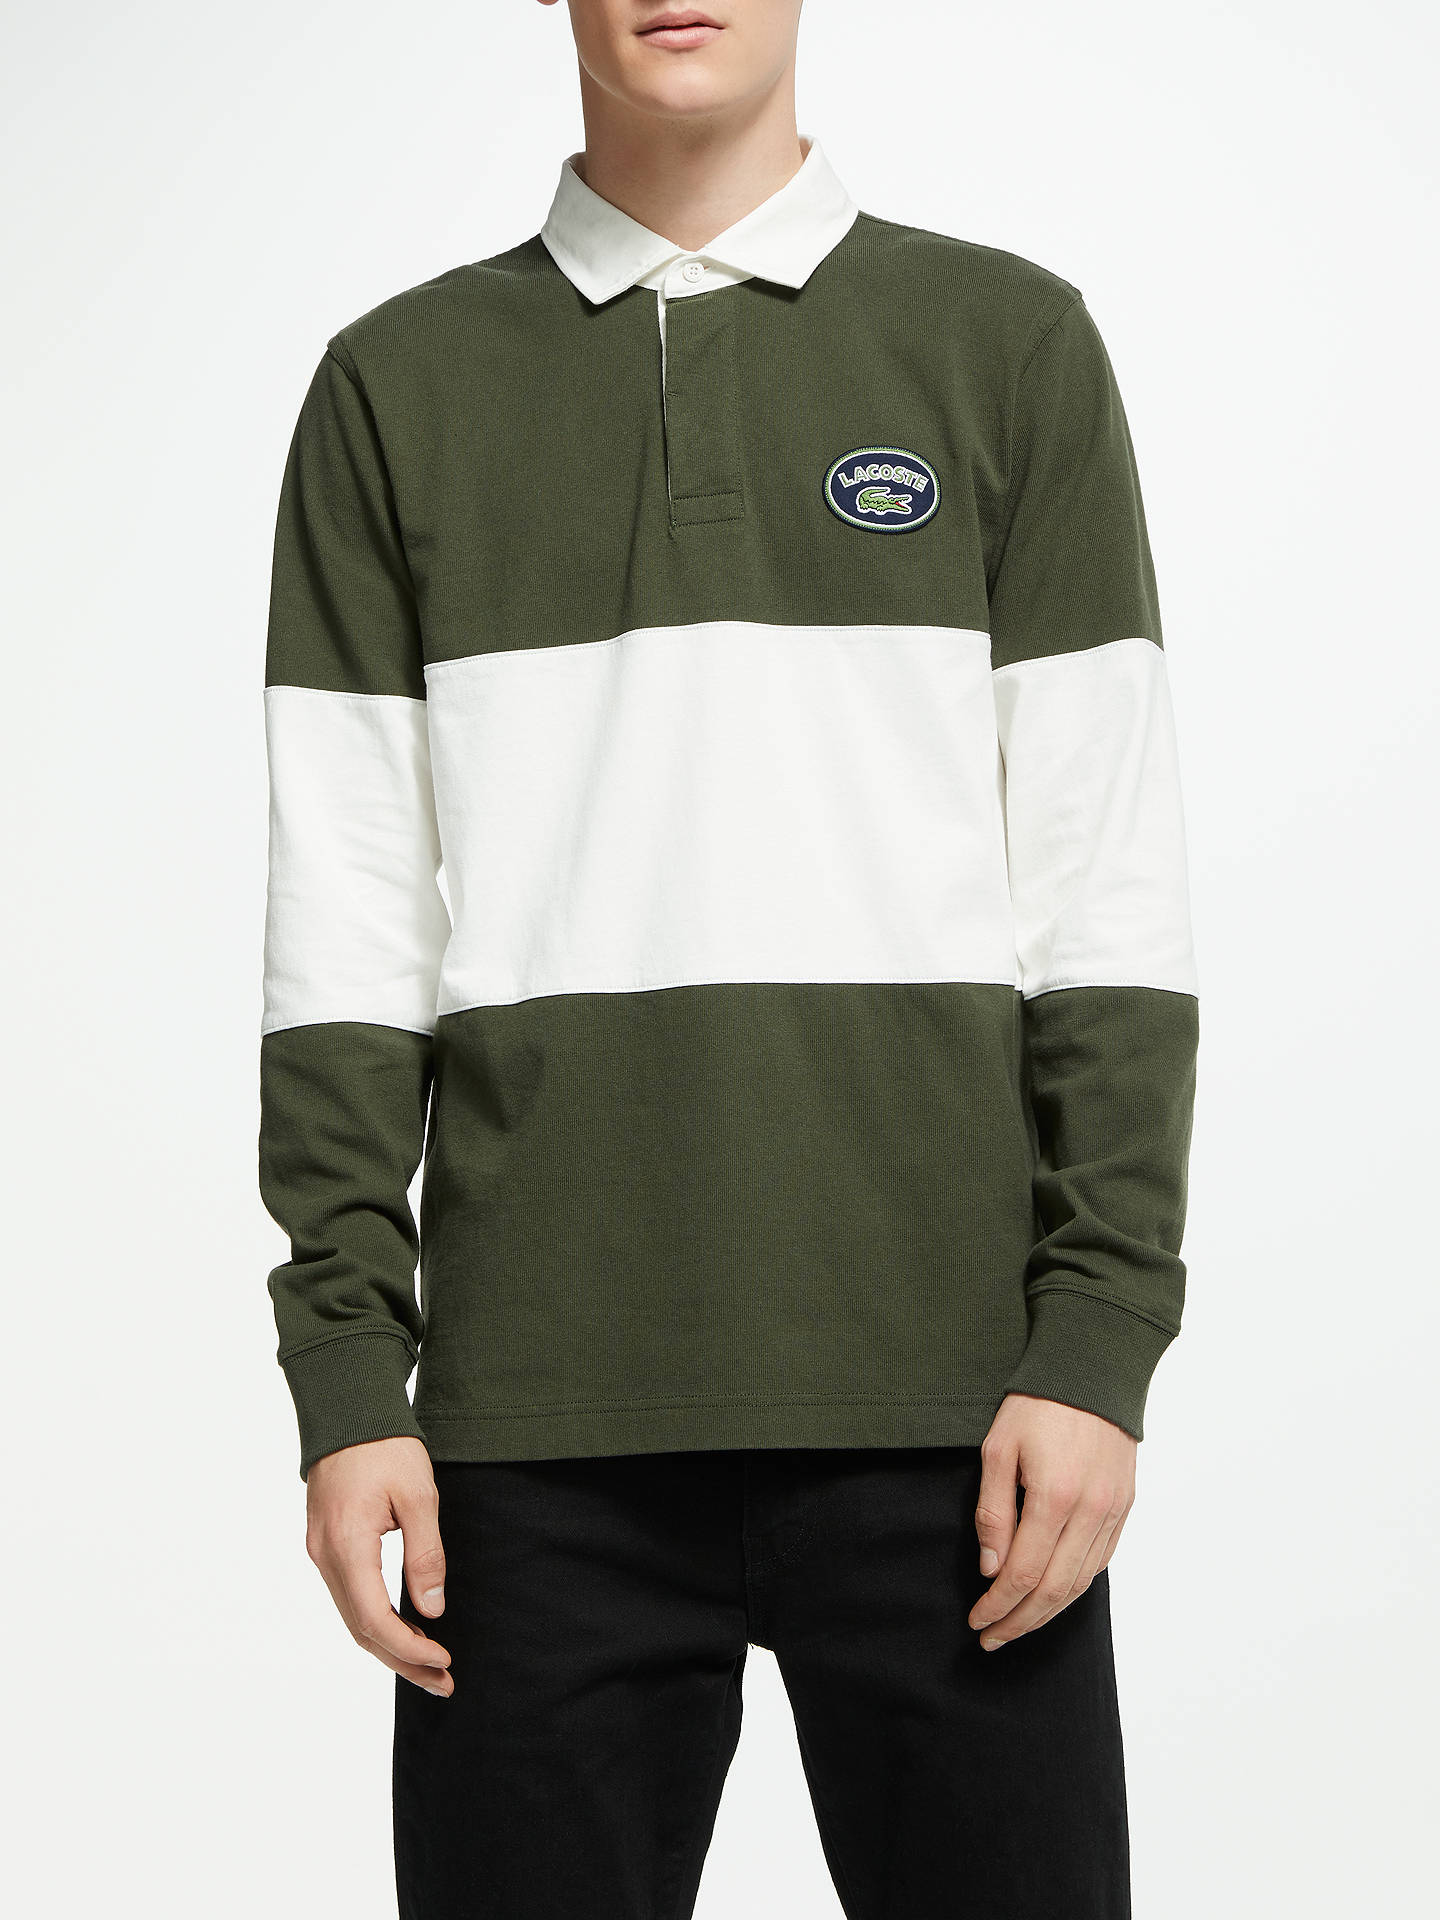 d30860e5 Buy Lacoste LIVE Heritage Logo Rugby Top, Green, S Online at johnlewis.com  ...